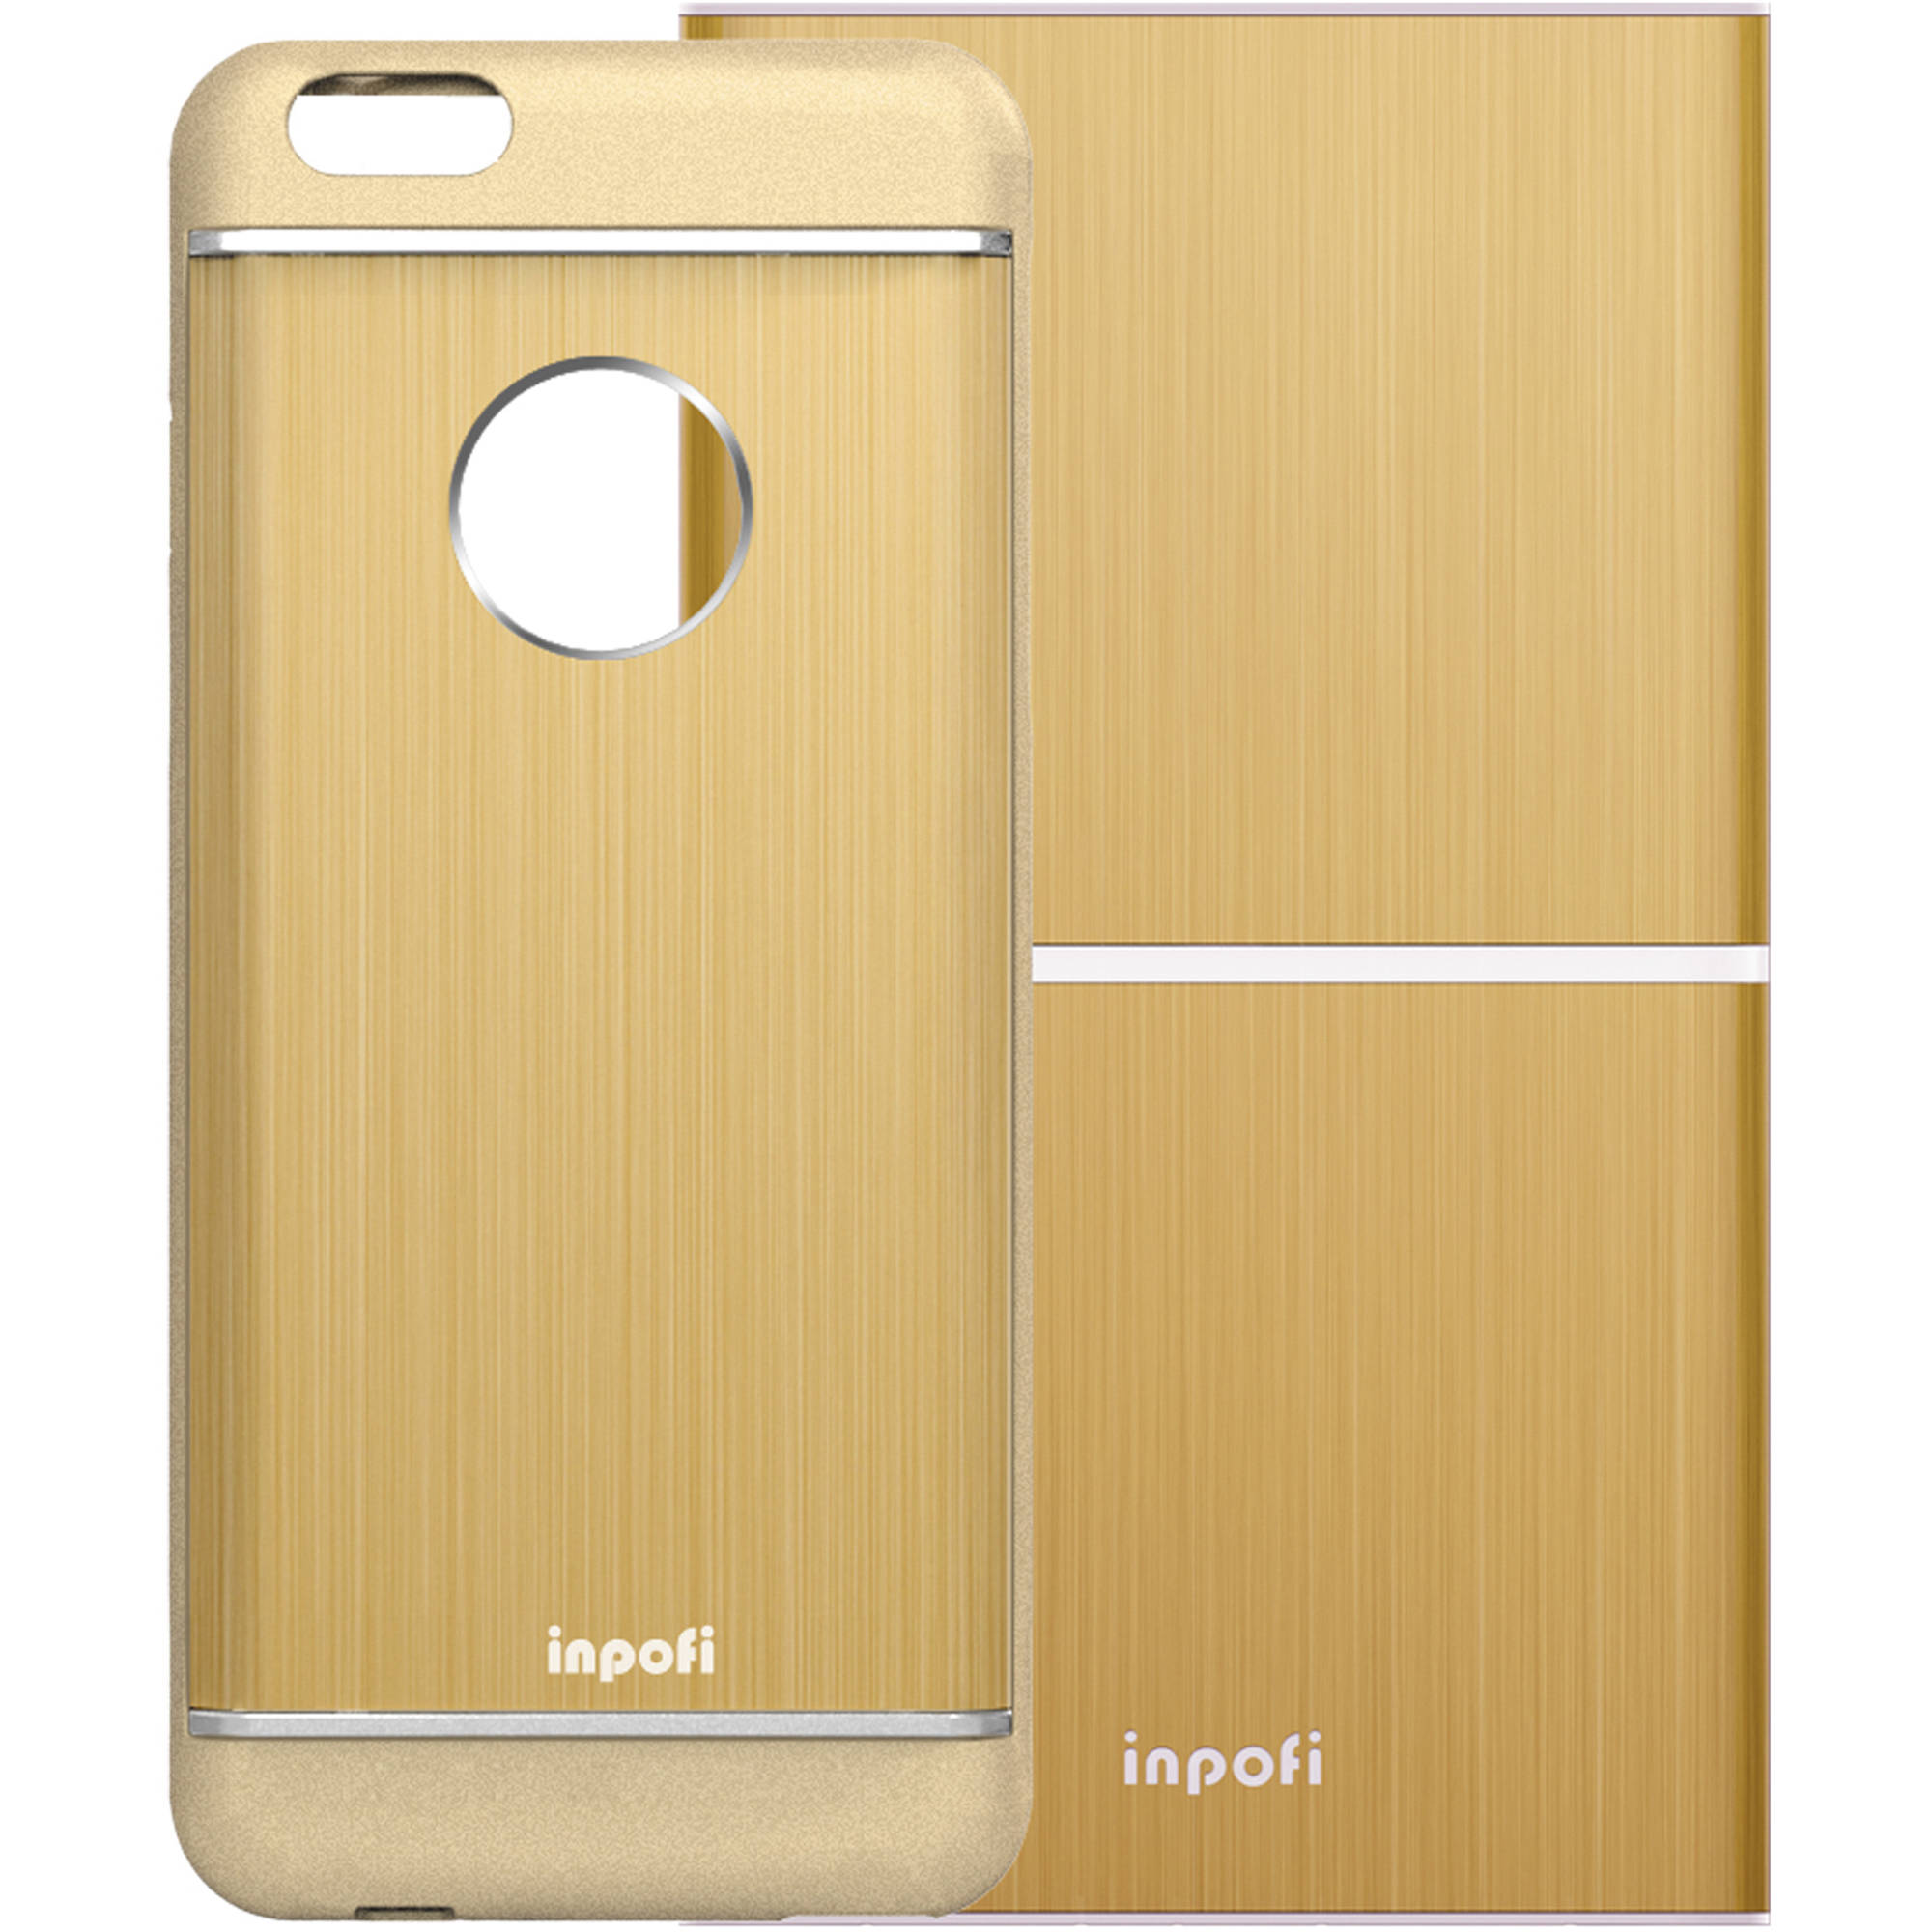 new style 0bd77 718e2 iNPOFi Wireless Charging System for iPhone 6 (Champagne Gold)